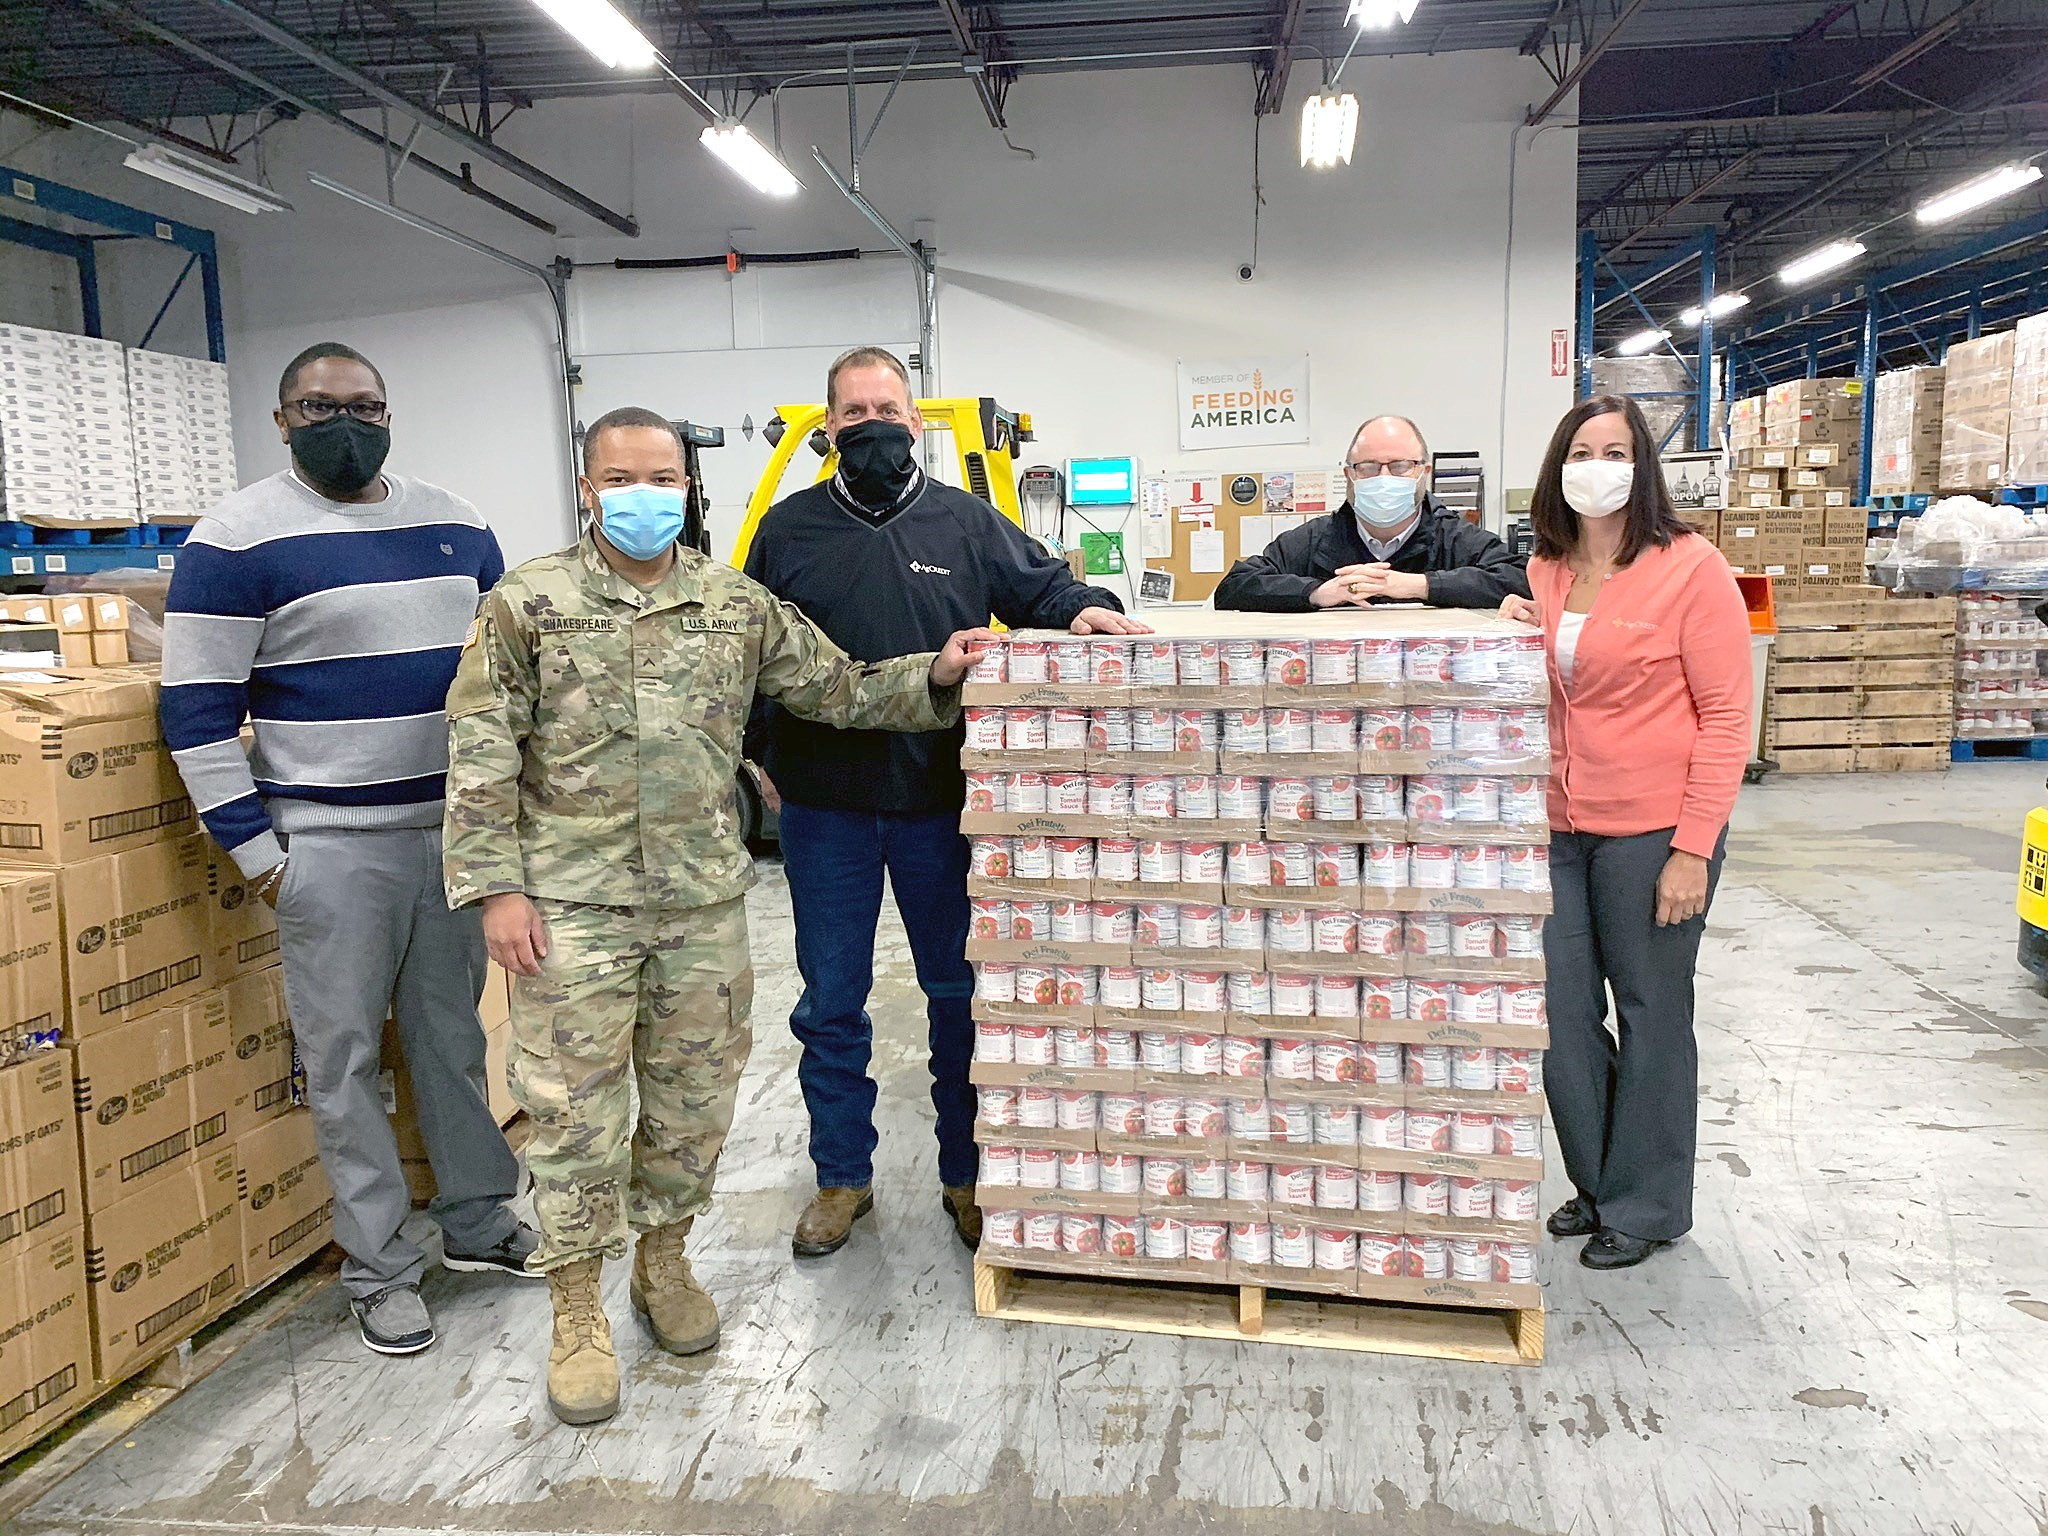 """AgCredit recently donated more than 6,100 cans of tomato sauce to the West Ohio Food Bank, Toledo Northwestern Ohio Food Bank and Second Harvest Food Bank of North Central Ohio as part of the lender's """"Sharing the Harvest by Giving Thanks"""" campaign. (Submitted photo)"""